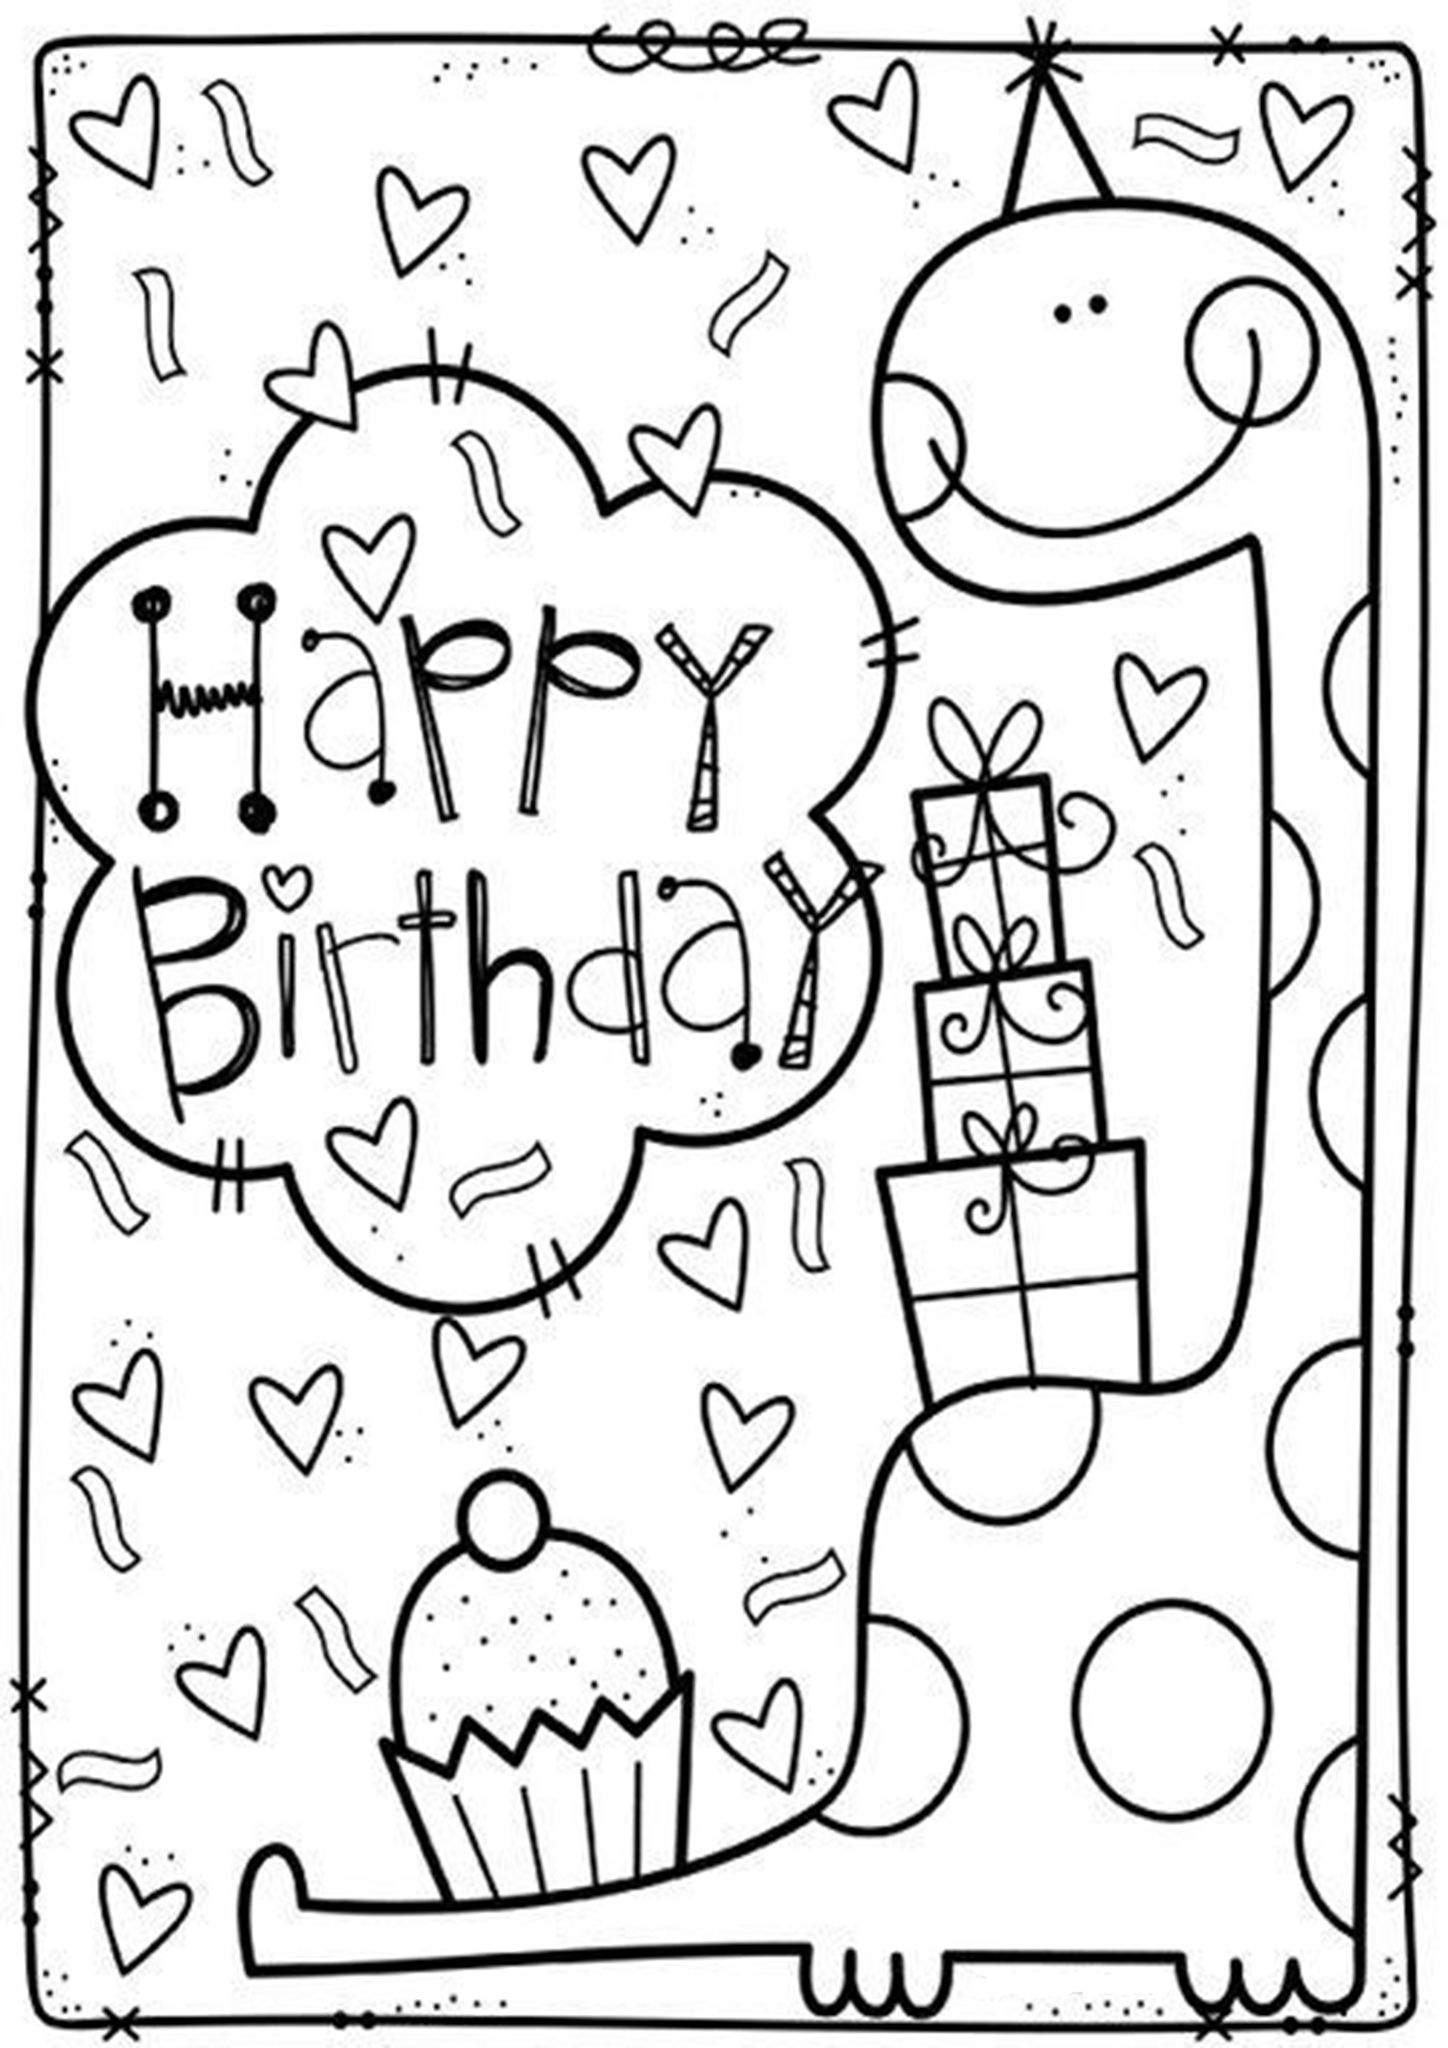 Free Easy To Print Happy Birthday Coloring Pages Birthday Coloring Pages Happy Birthday Coloring Pages Dinosaur Coloring Pages